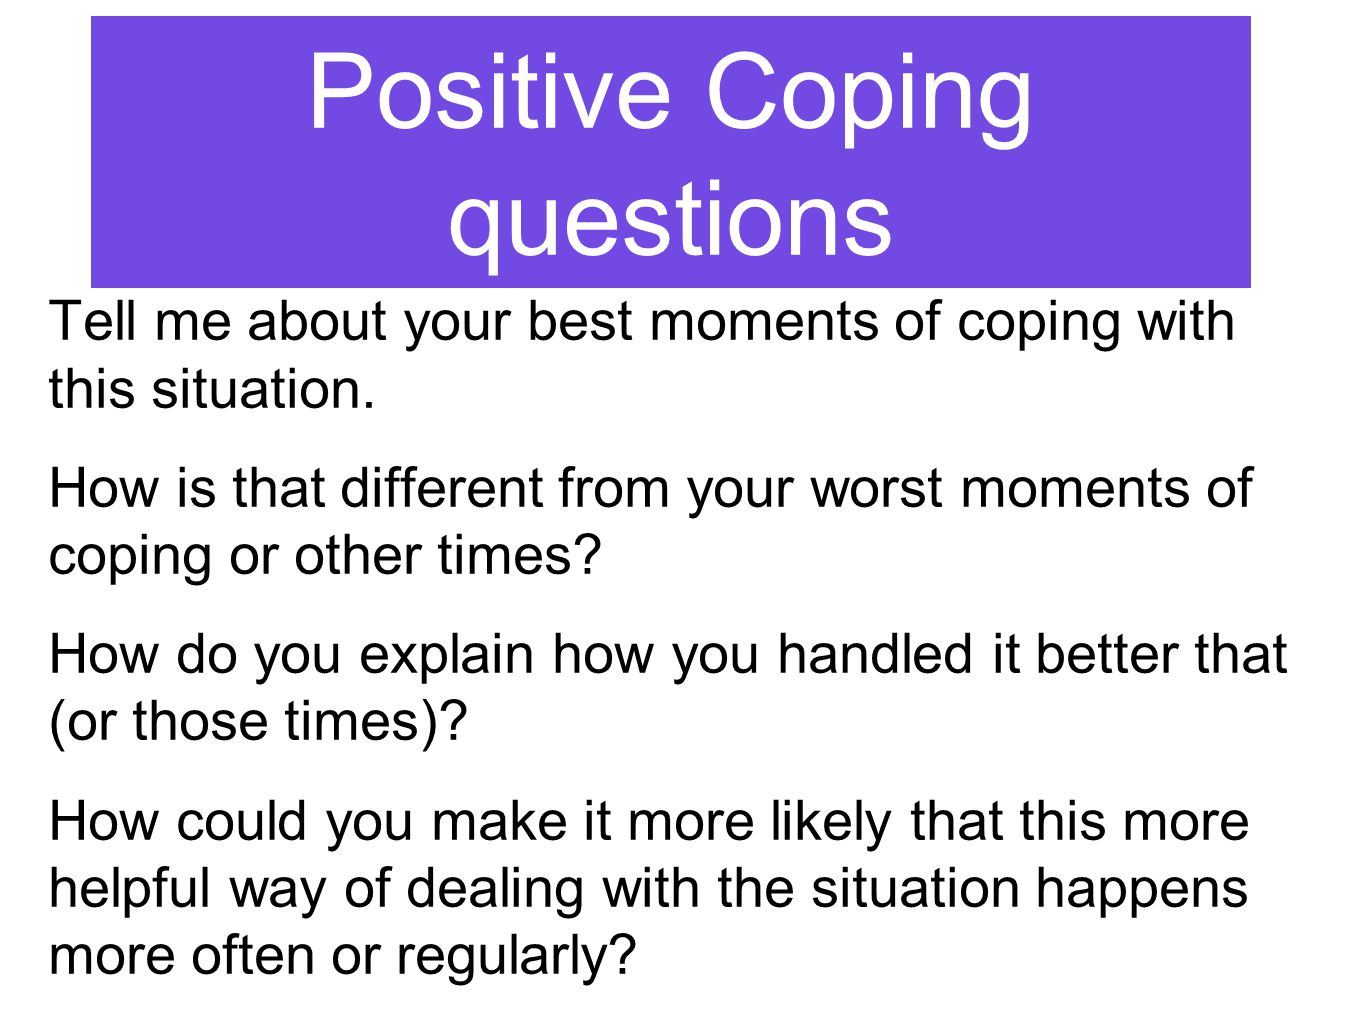 Positive Coping questions Tell me about your best moments of coping with this situation.